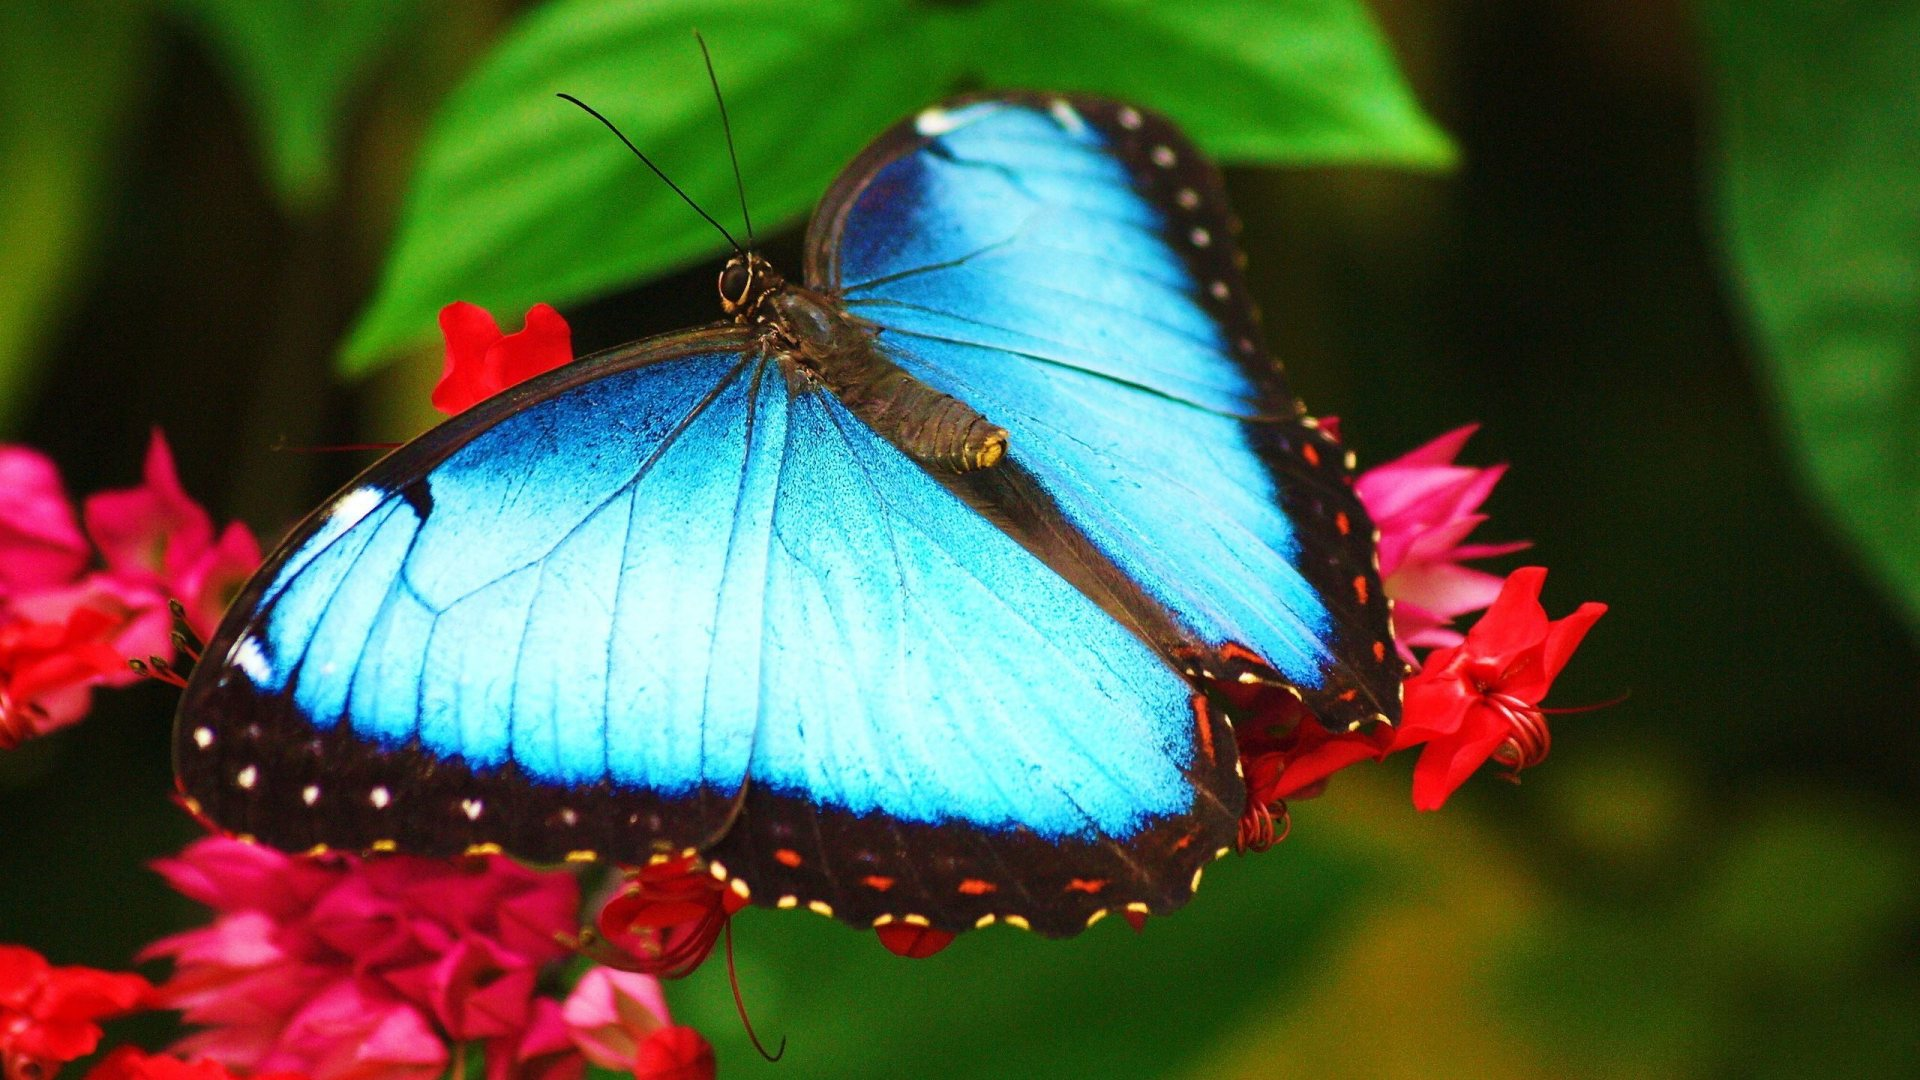 Blue Butterfly Full HD Desktop Wallpapers 1080p 1920x1080